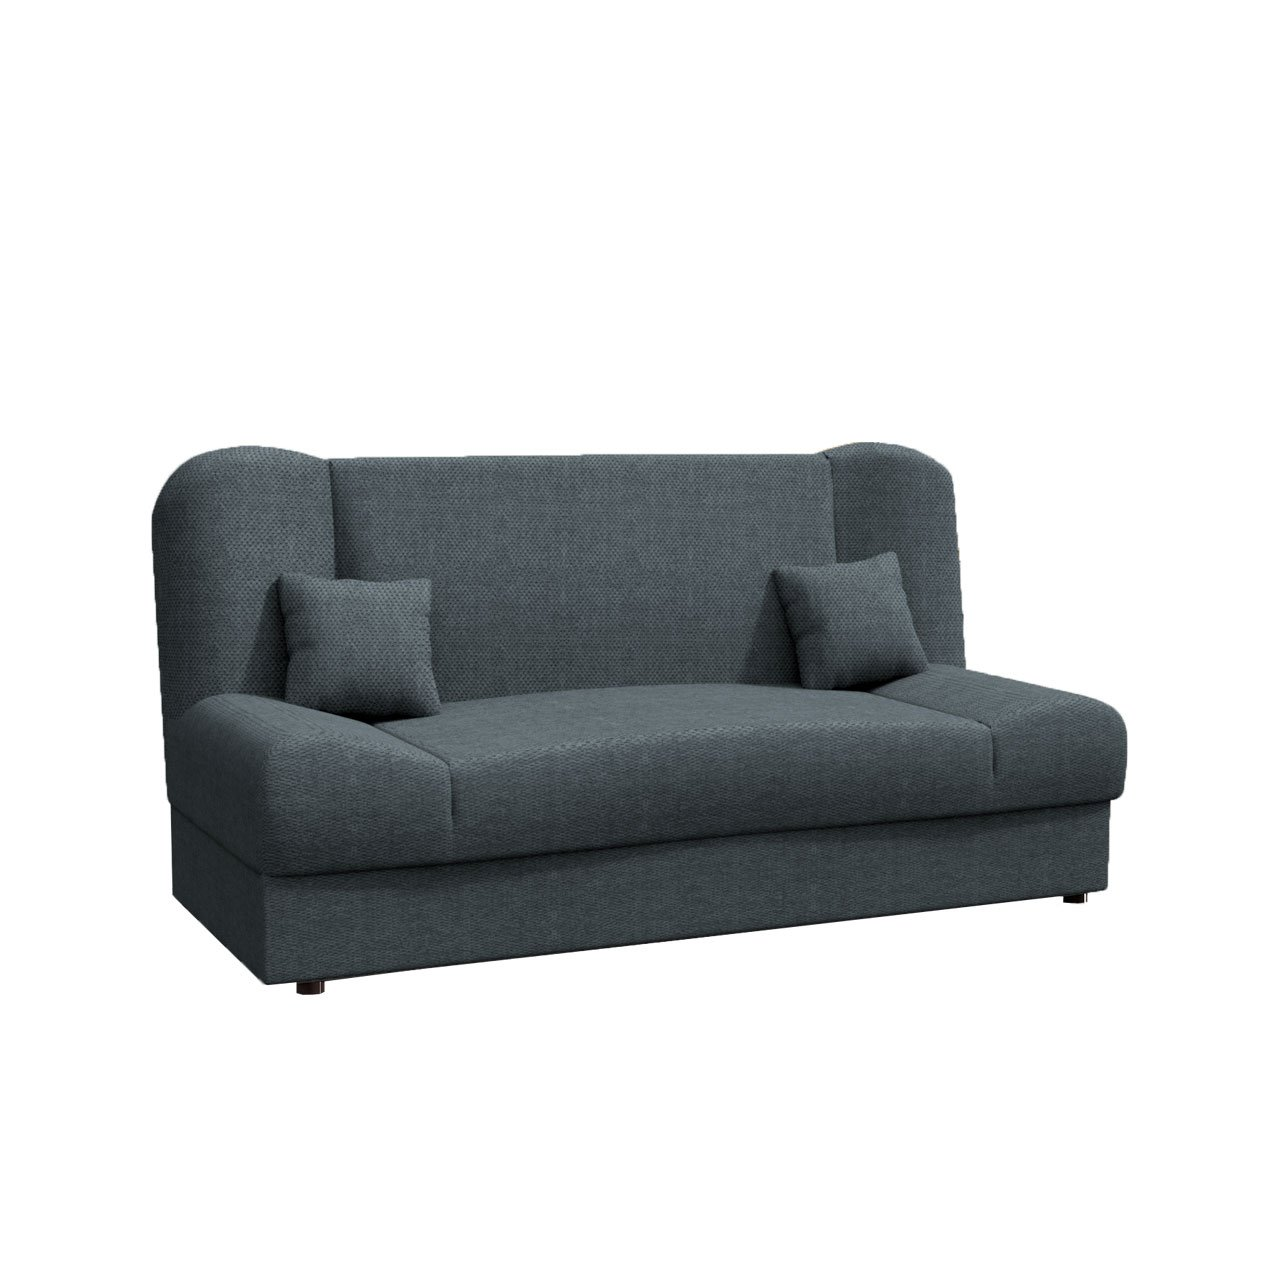 Schlafsofa mit bettkasten 140x200  Sofas & Couches | Amazon.de